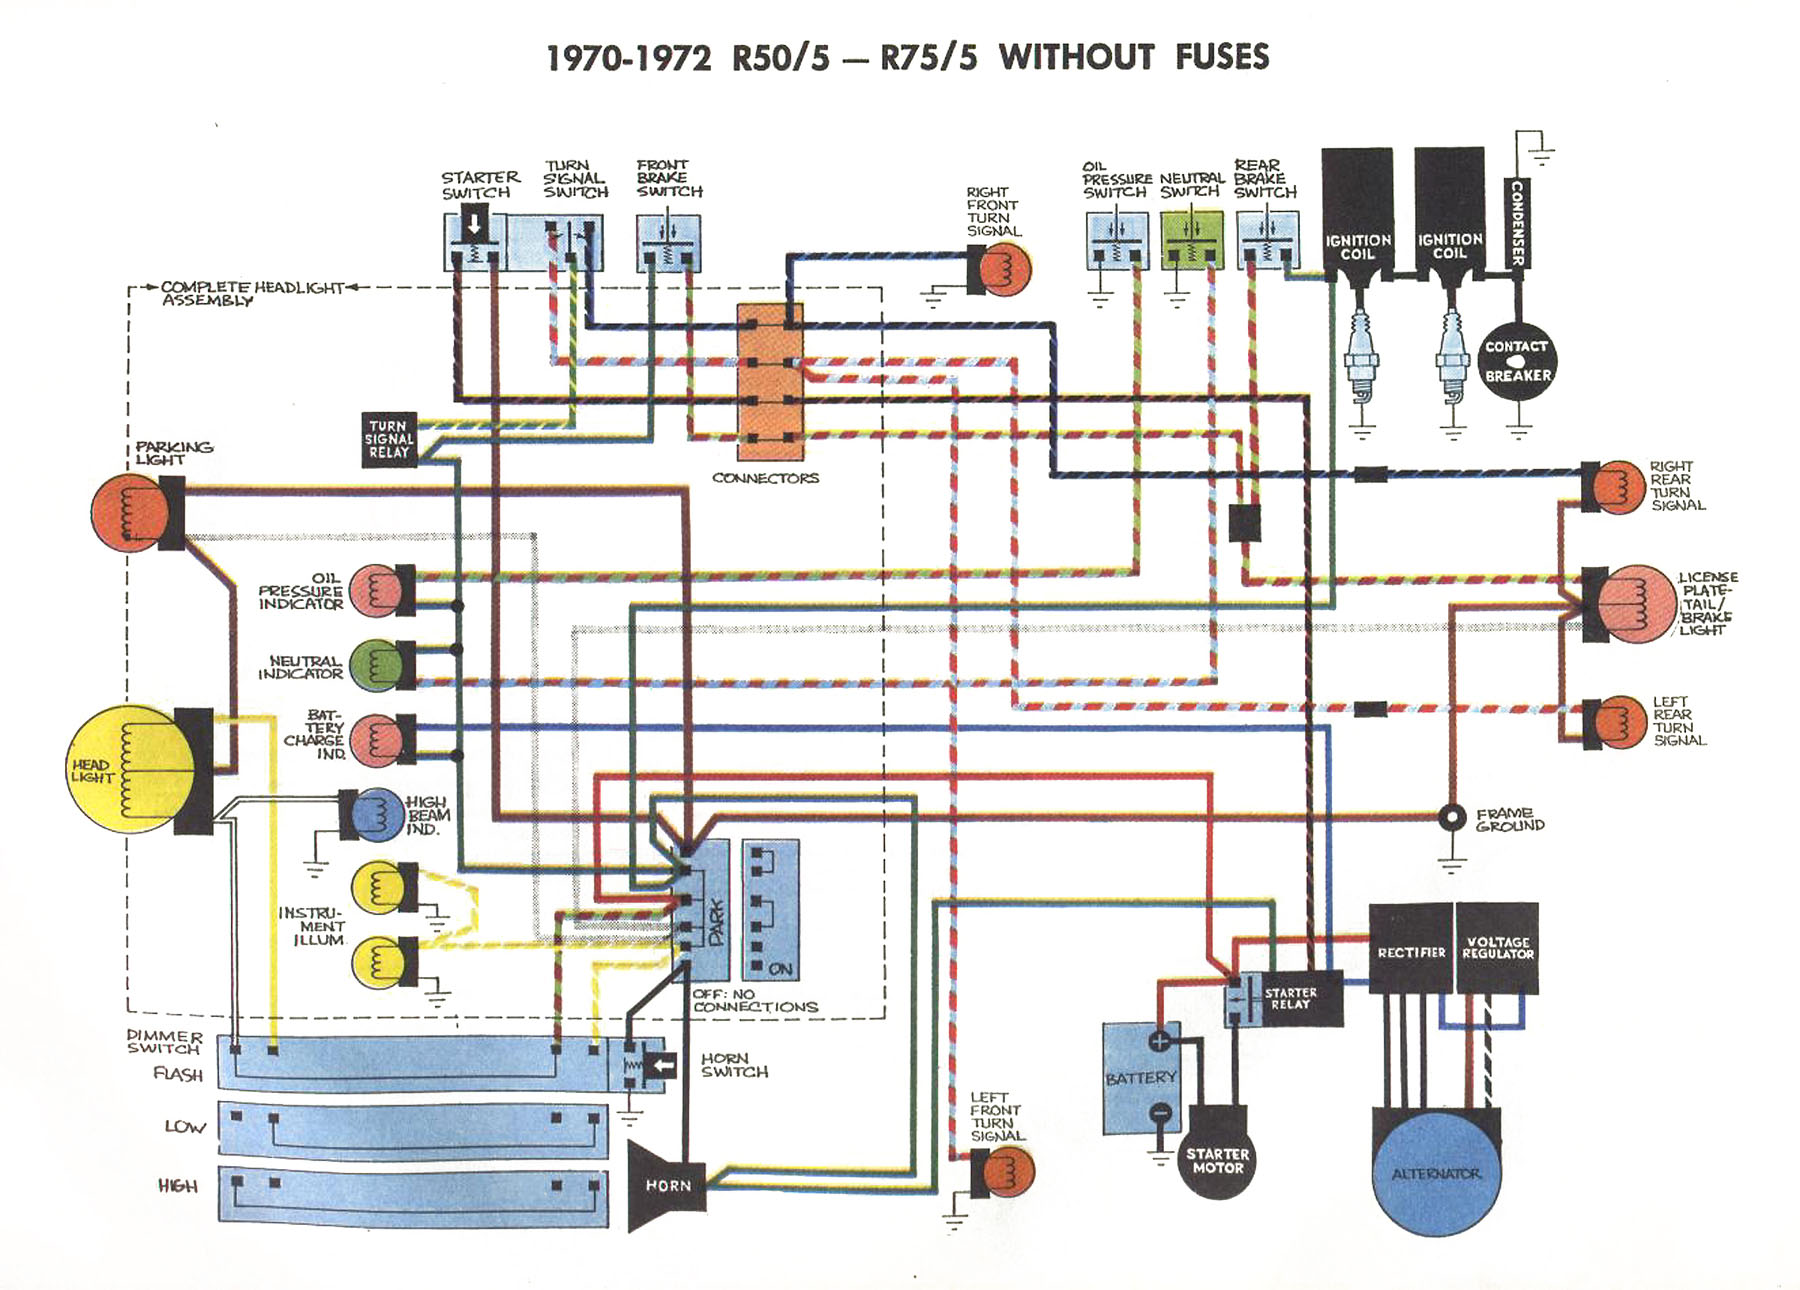 hight resolution of  5 without fuses schematic